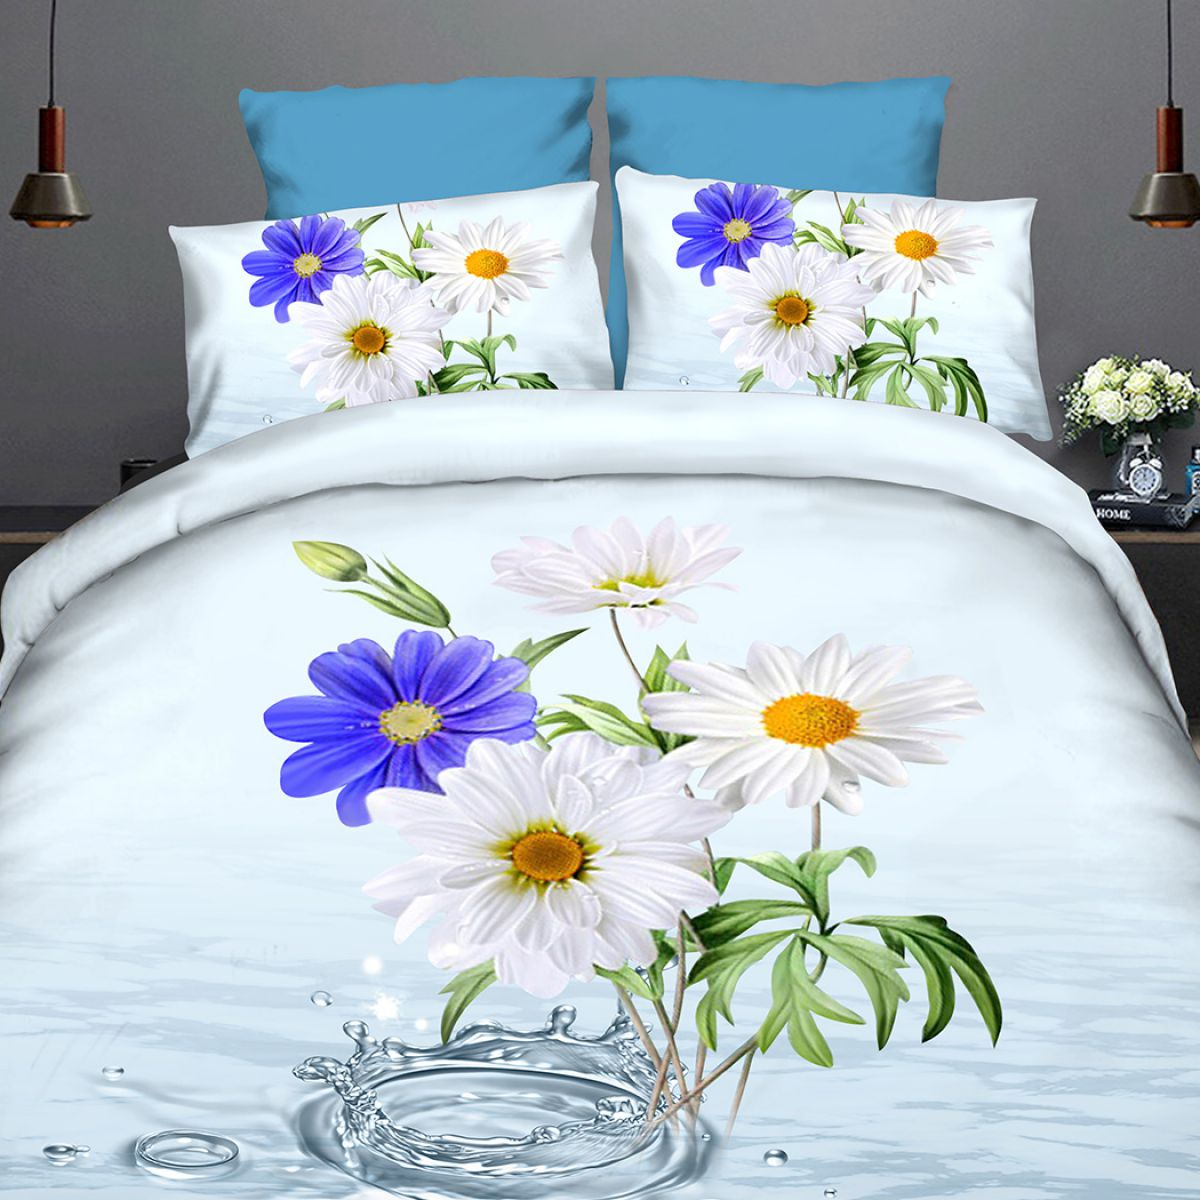 3D Beddings - Antonio - AML-9 - 140x200 cm - 2 pcs